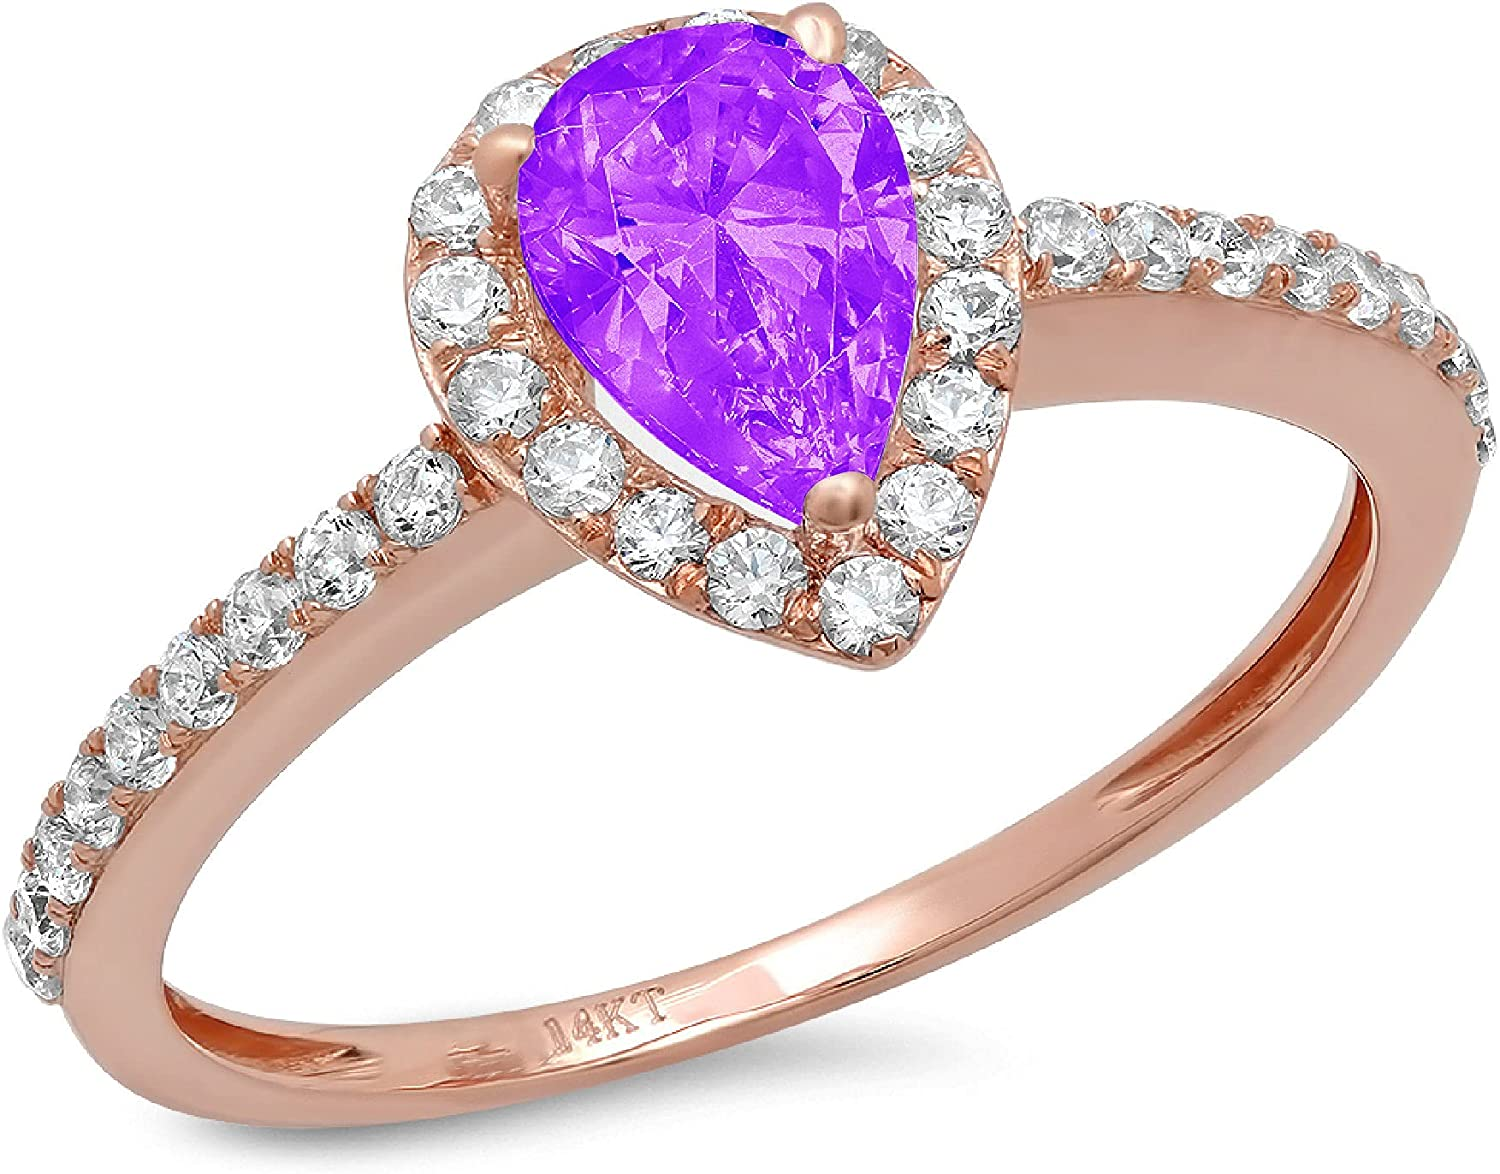 1.22ct Brilliant Pear Cut Solitaire with accent Natural Purple Amethyst Gem Stone Ideal VVS1 Engagement Promise Anniversary Bridal Wedding Ring Real 14k Rose Gold